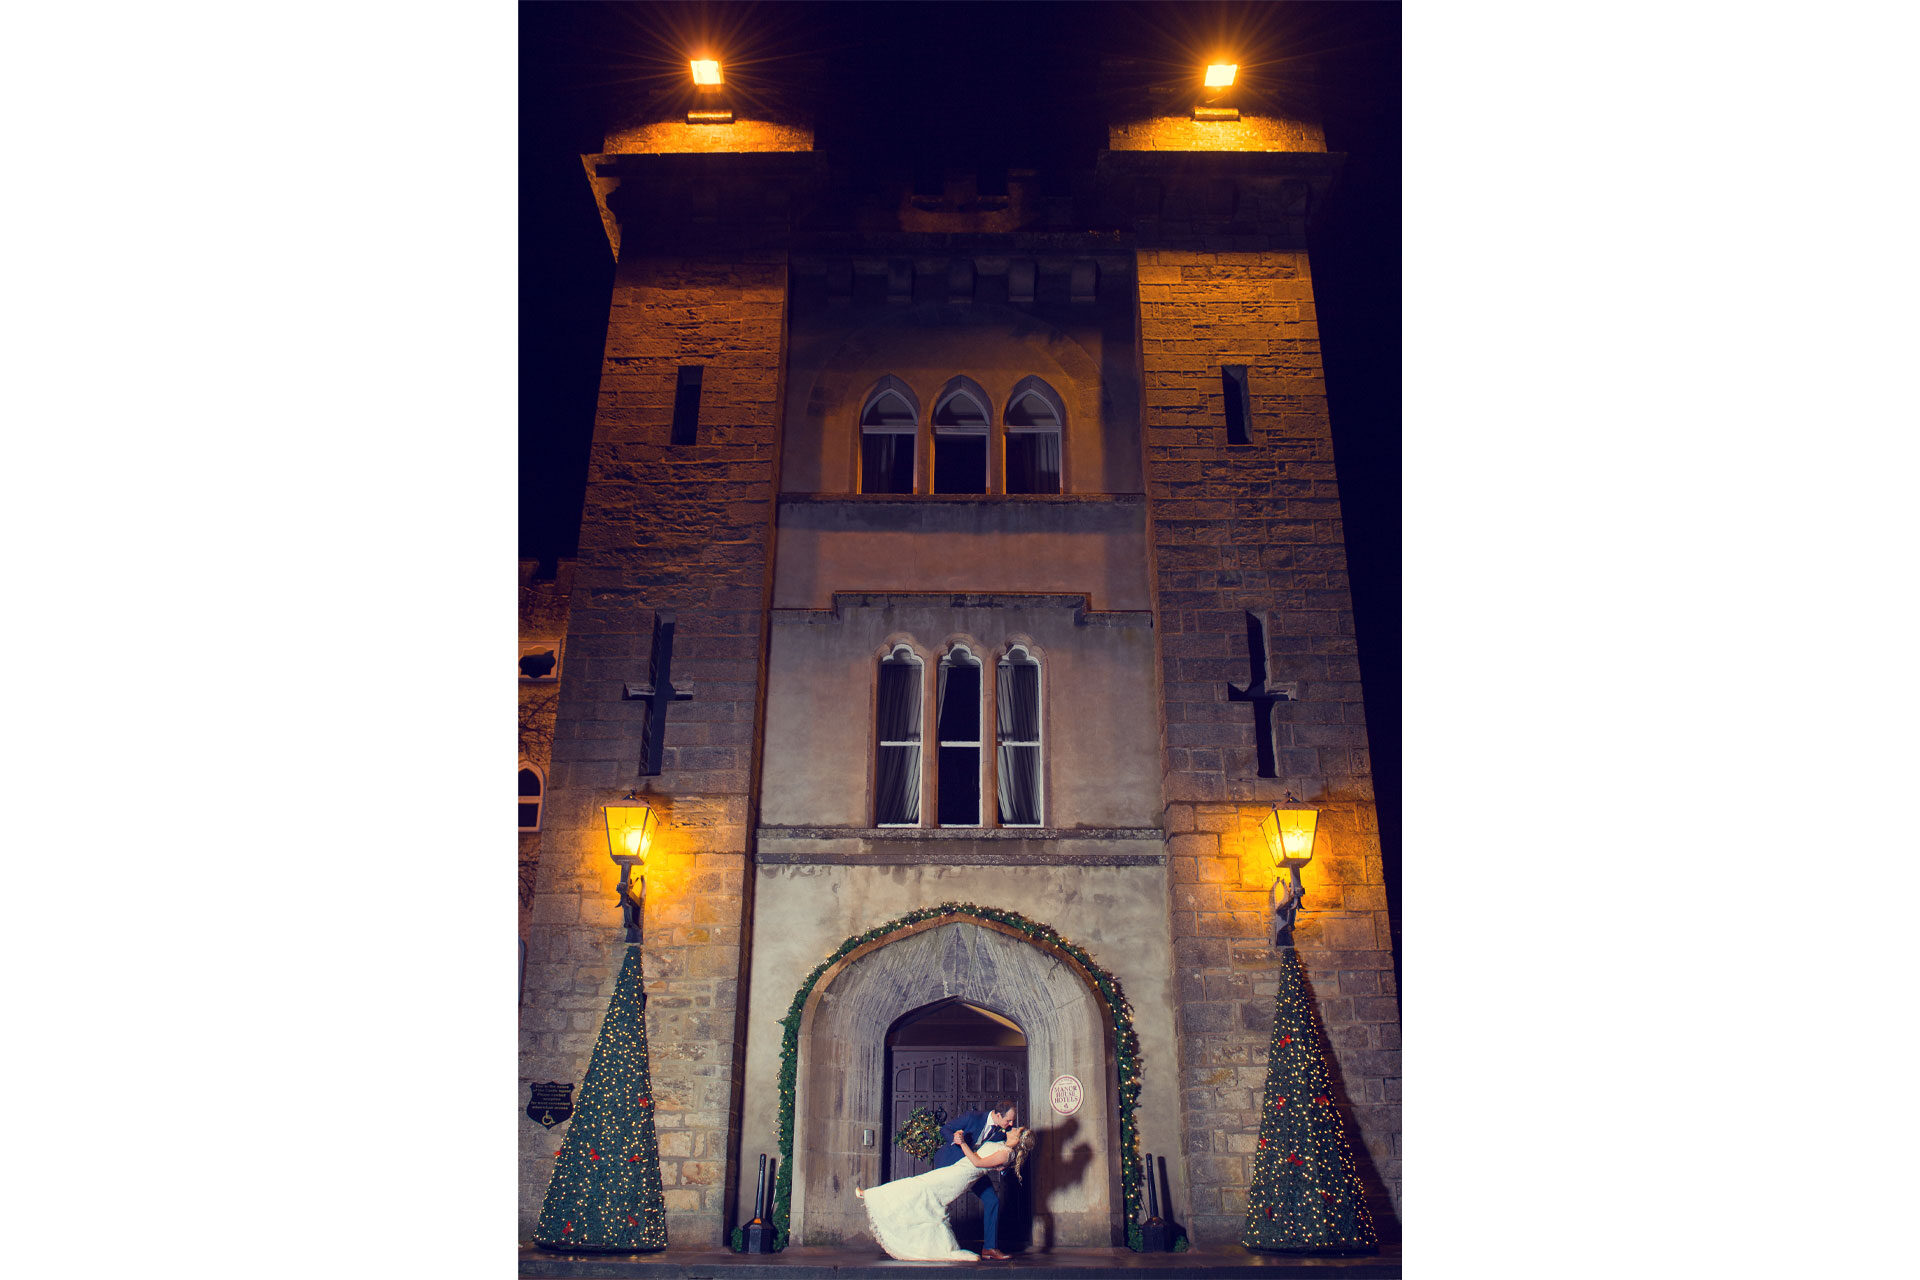 Photo of Alison and James on their wedding day, captured at the front of Cabra Castle Hotel, Kingscourt, Co. Cavan, Ireland, at Christmas time.